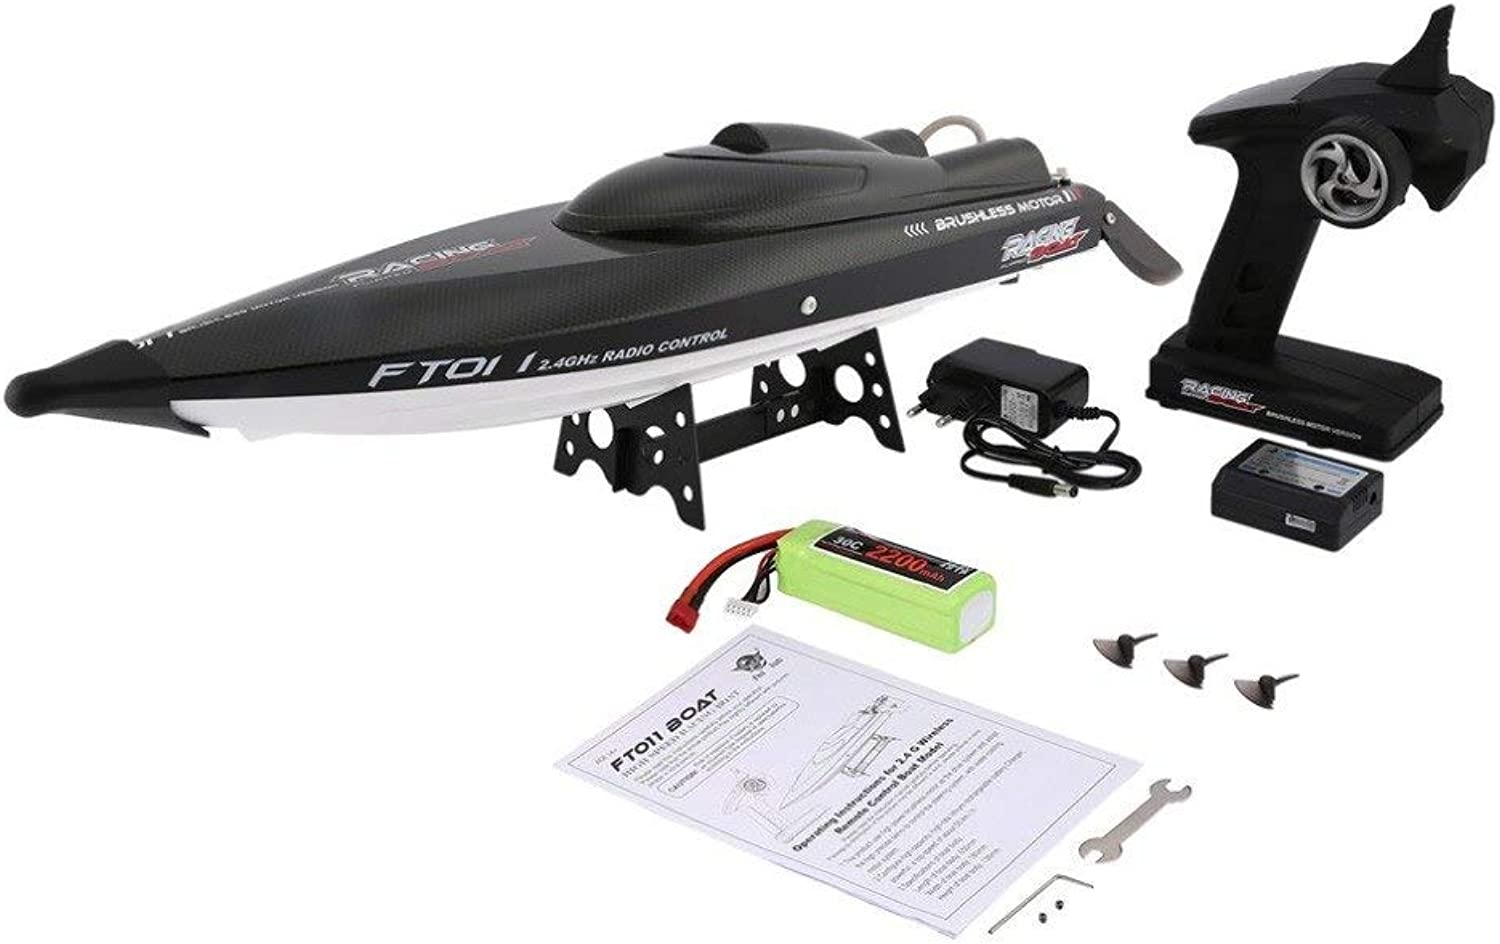 Generic Feilun FT011 65cm 2.4G 2CH RC 55km h High Speed Racing Boat Ship Speedboat with Water Cooling System Flipped Brushless Motor